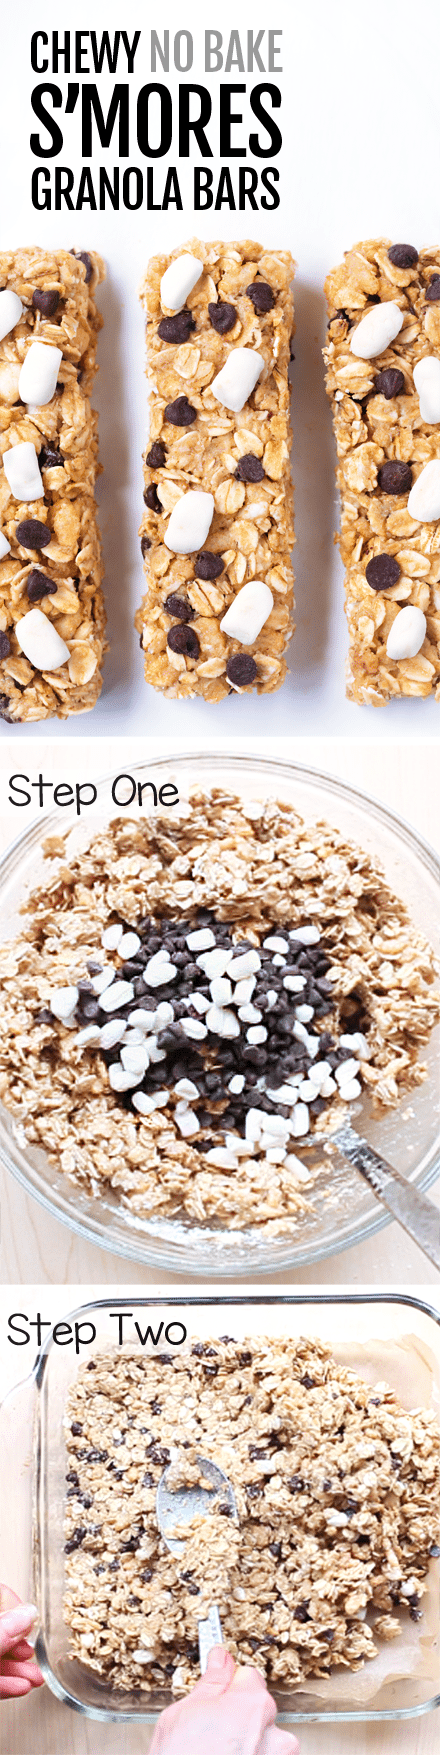 Homemade CHEWY S'mores Granola Bars